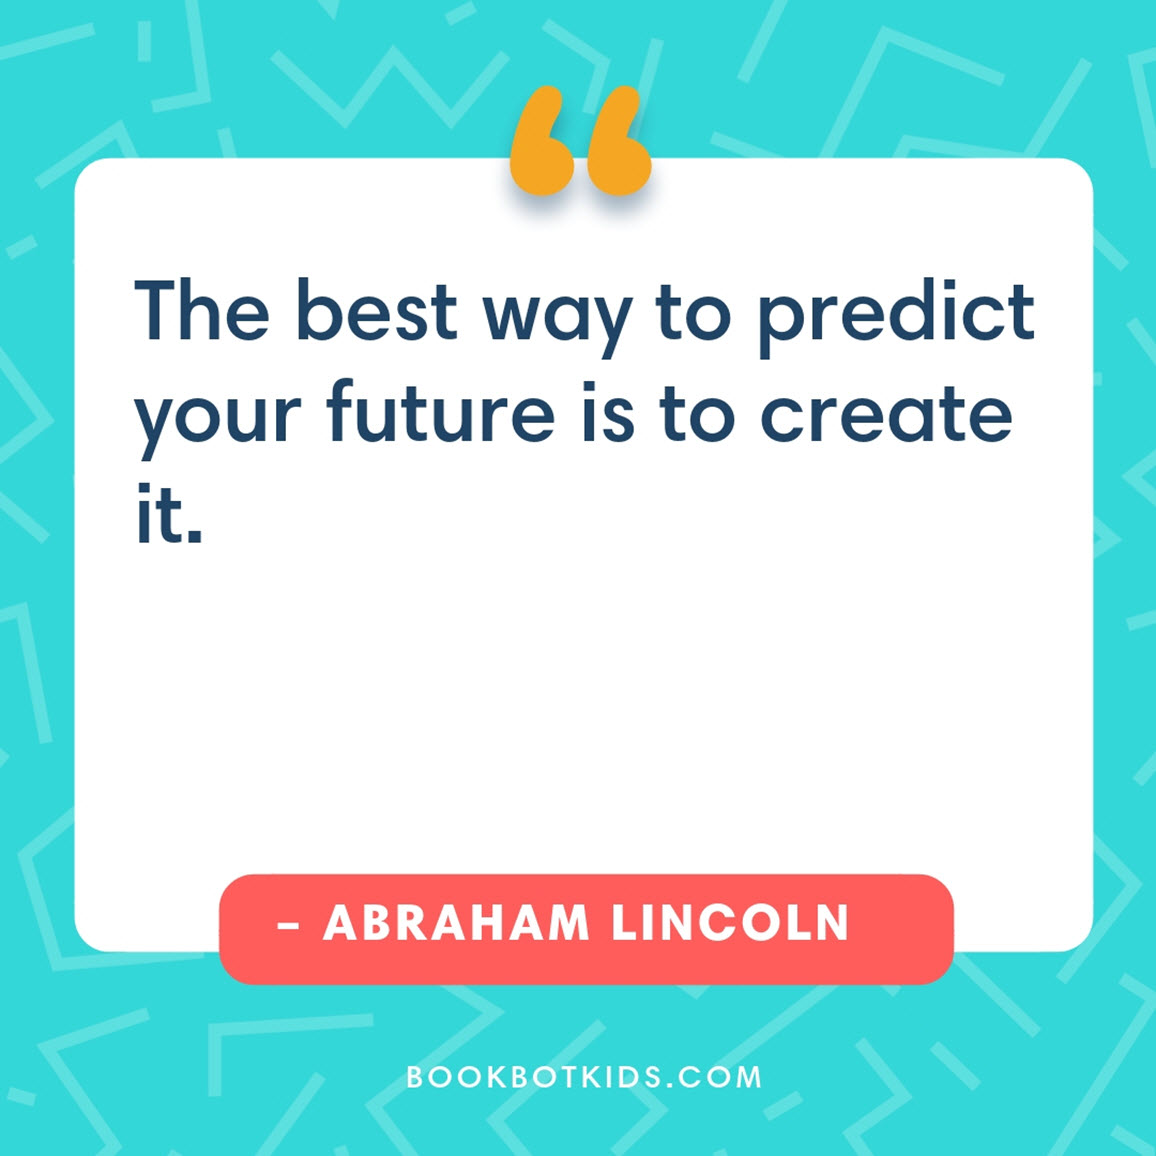 The best way to predict your future is to create it. – Abraham Lincoln